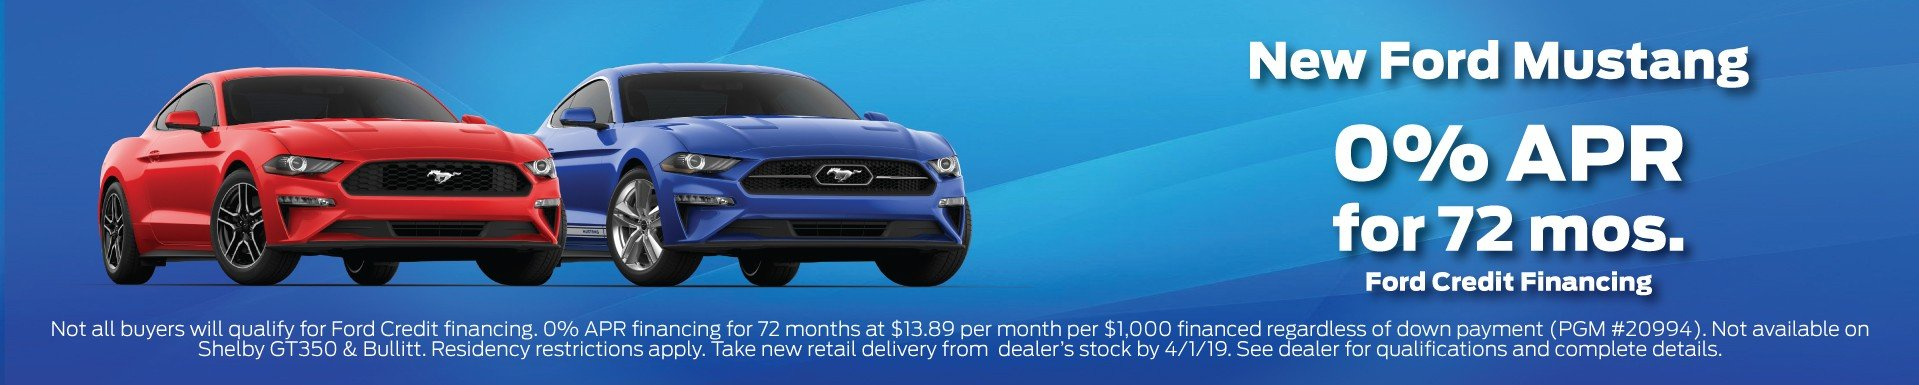 New Ford Mustang Finance Offer 3-2019